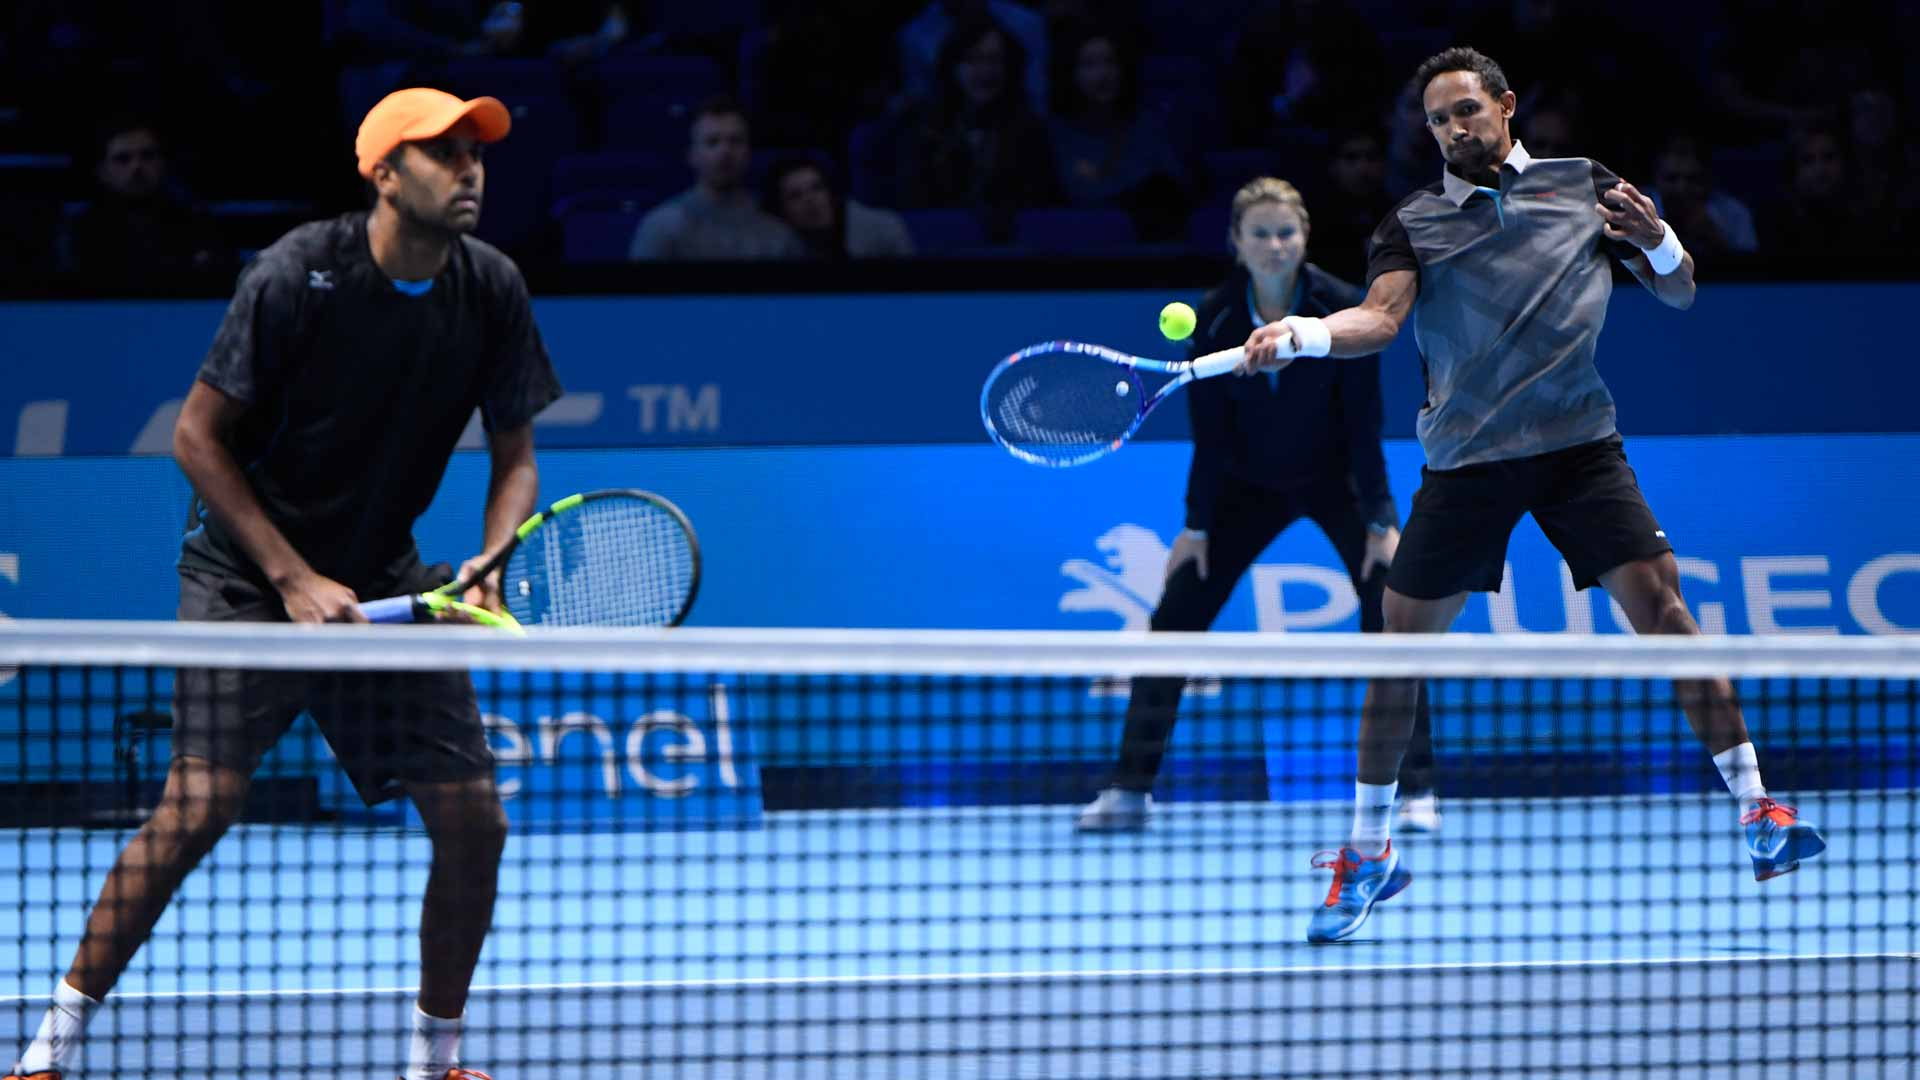 Rajeev Ram (L) and Raven Klaasen continue their top form at the Barclays ATP World Tour Finals.